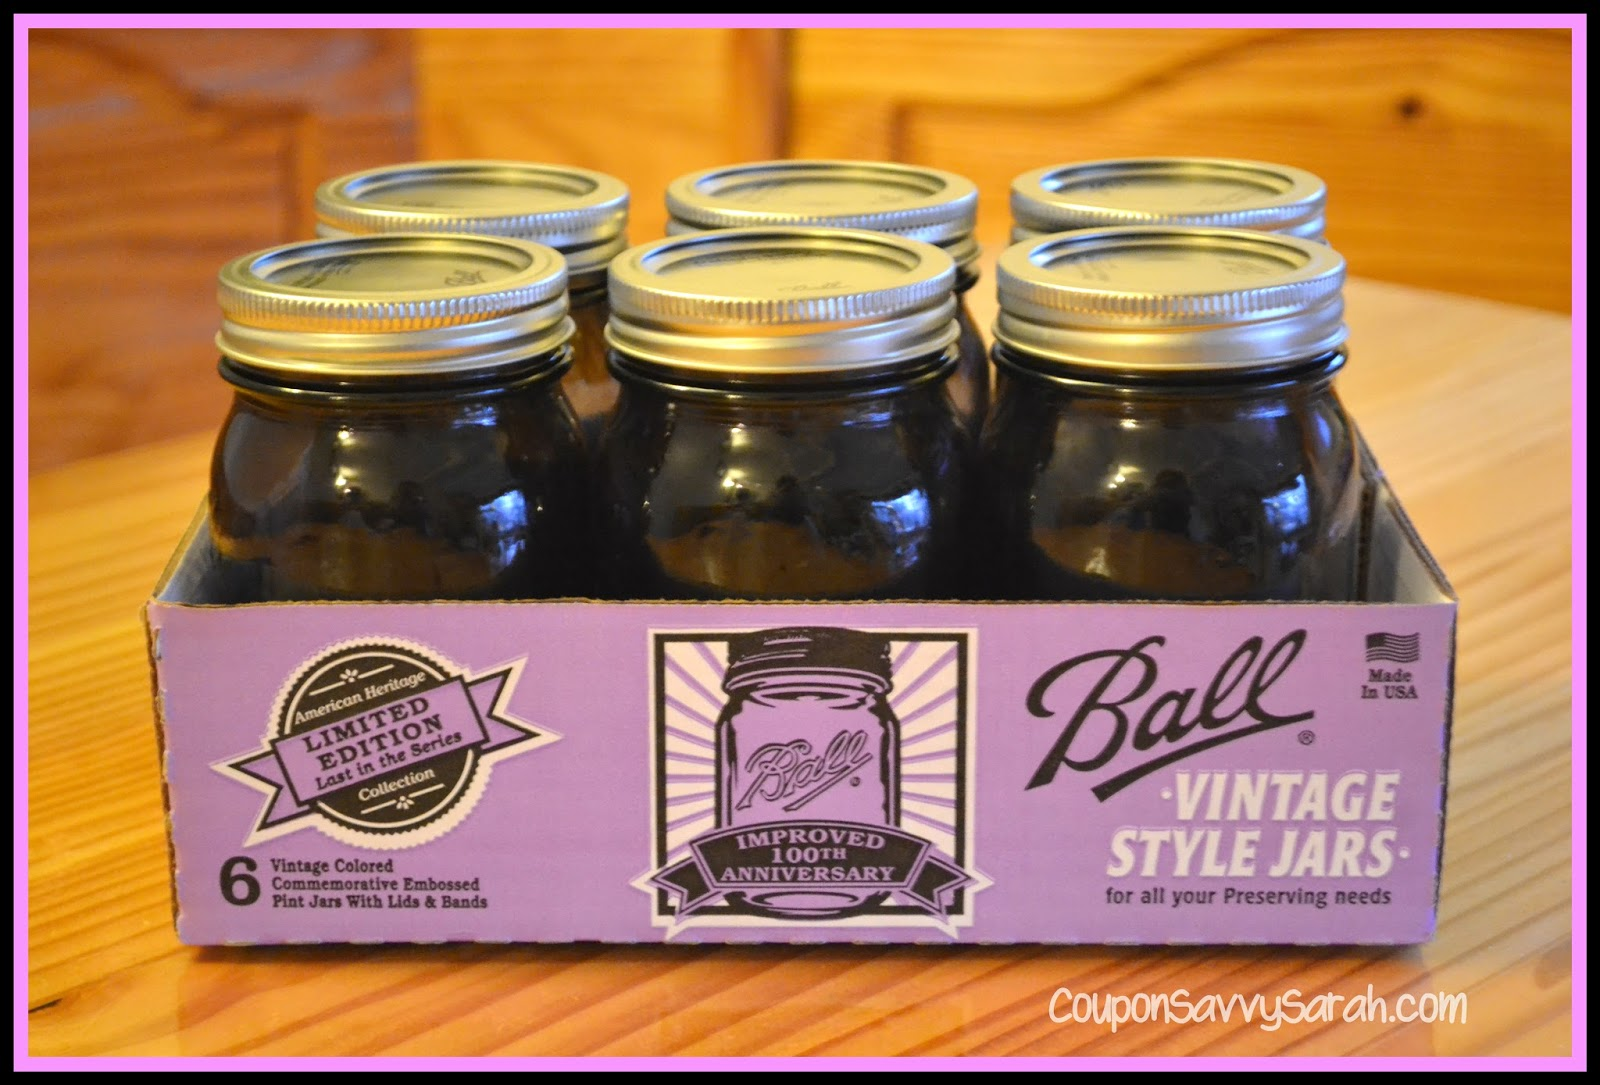 Ball canning jar coupons